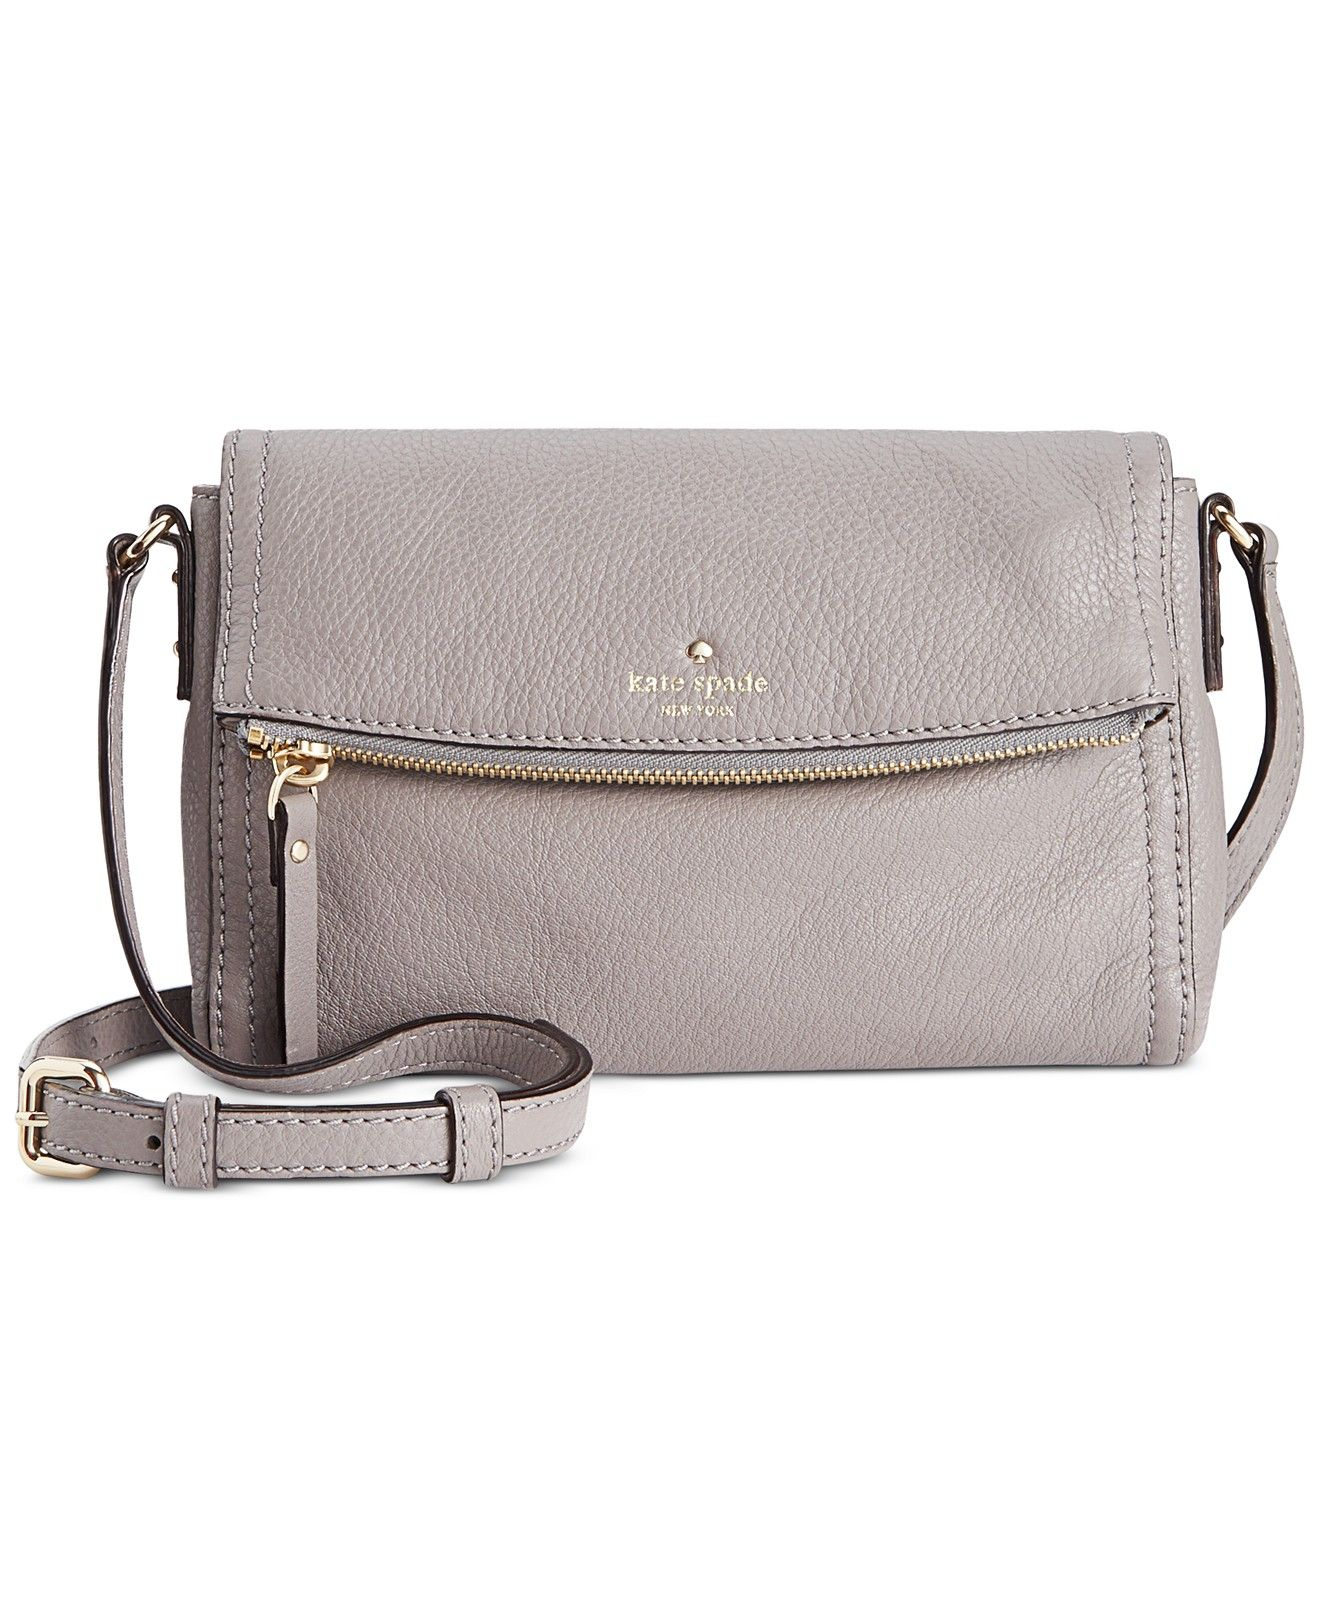 e40cc55cc8 kate spade new york Cobble Hill Mini Carson Crossbody - Crossbody    Messenger Bags - Handbags   Accessories - Macy s